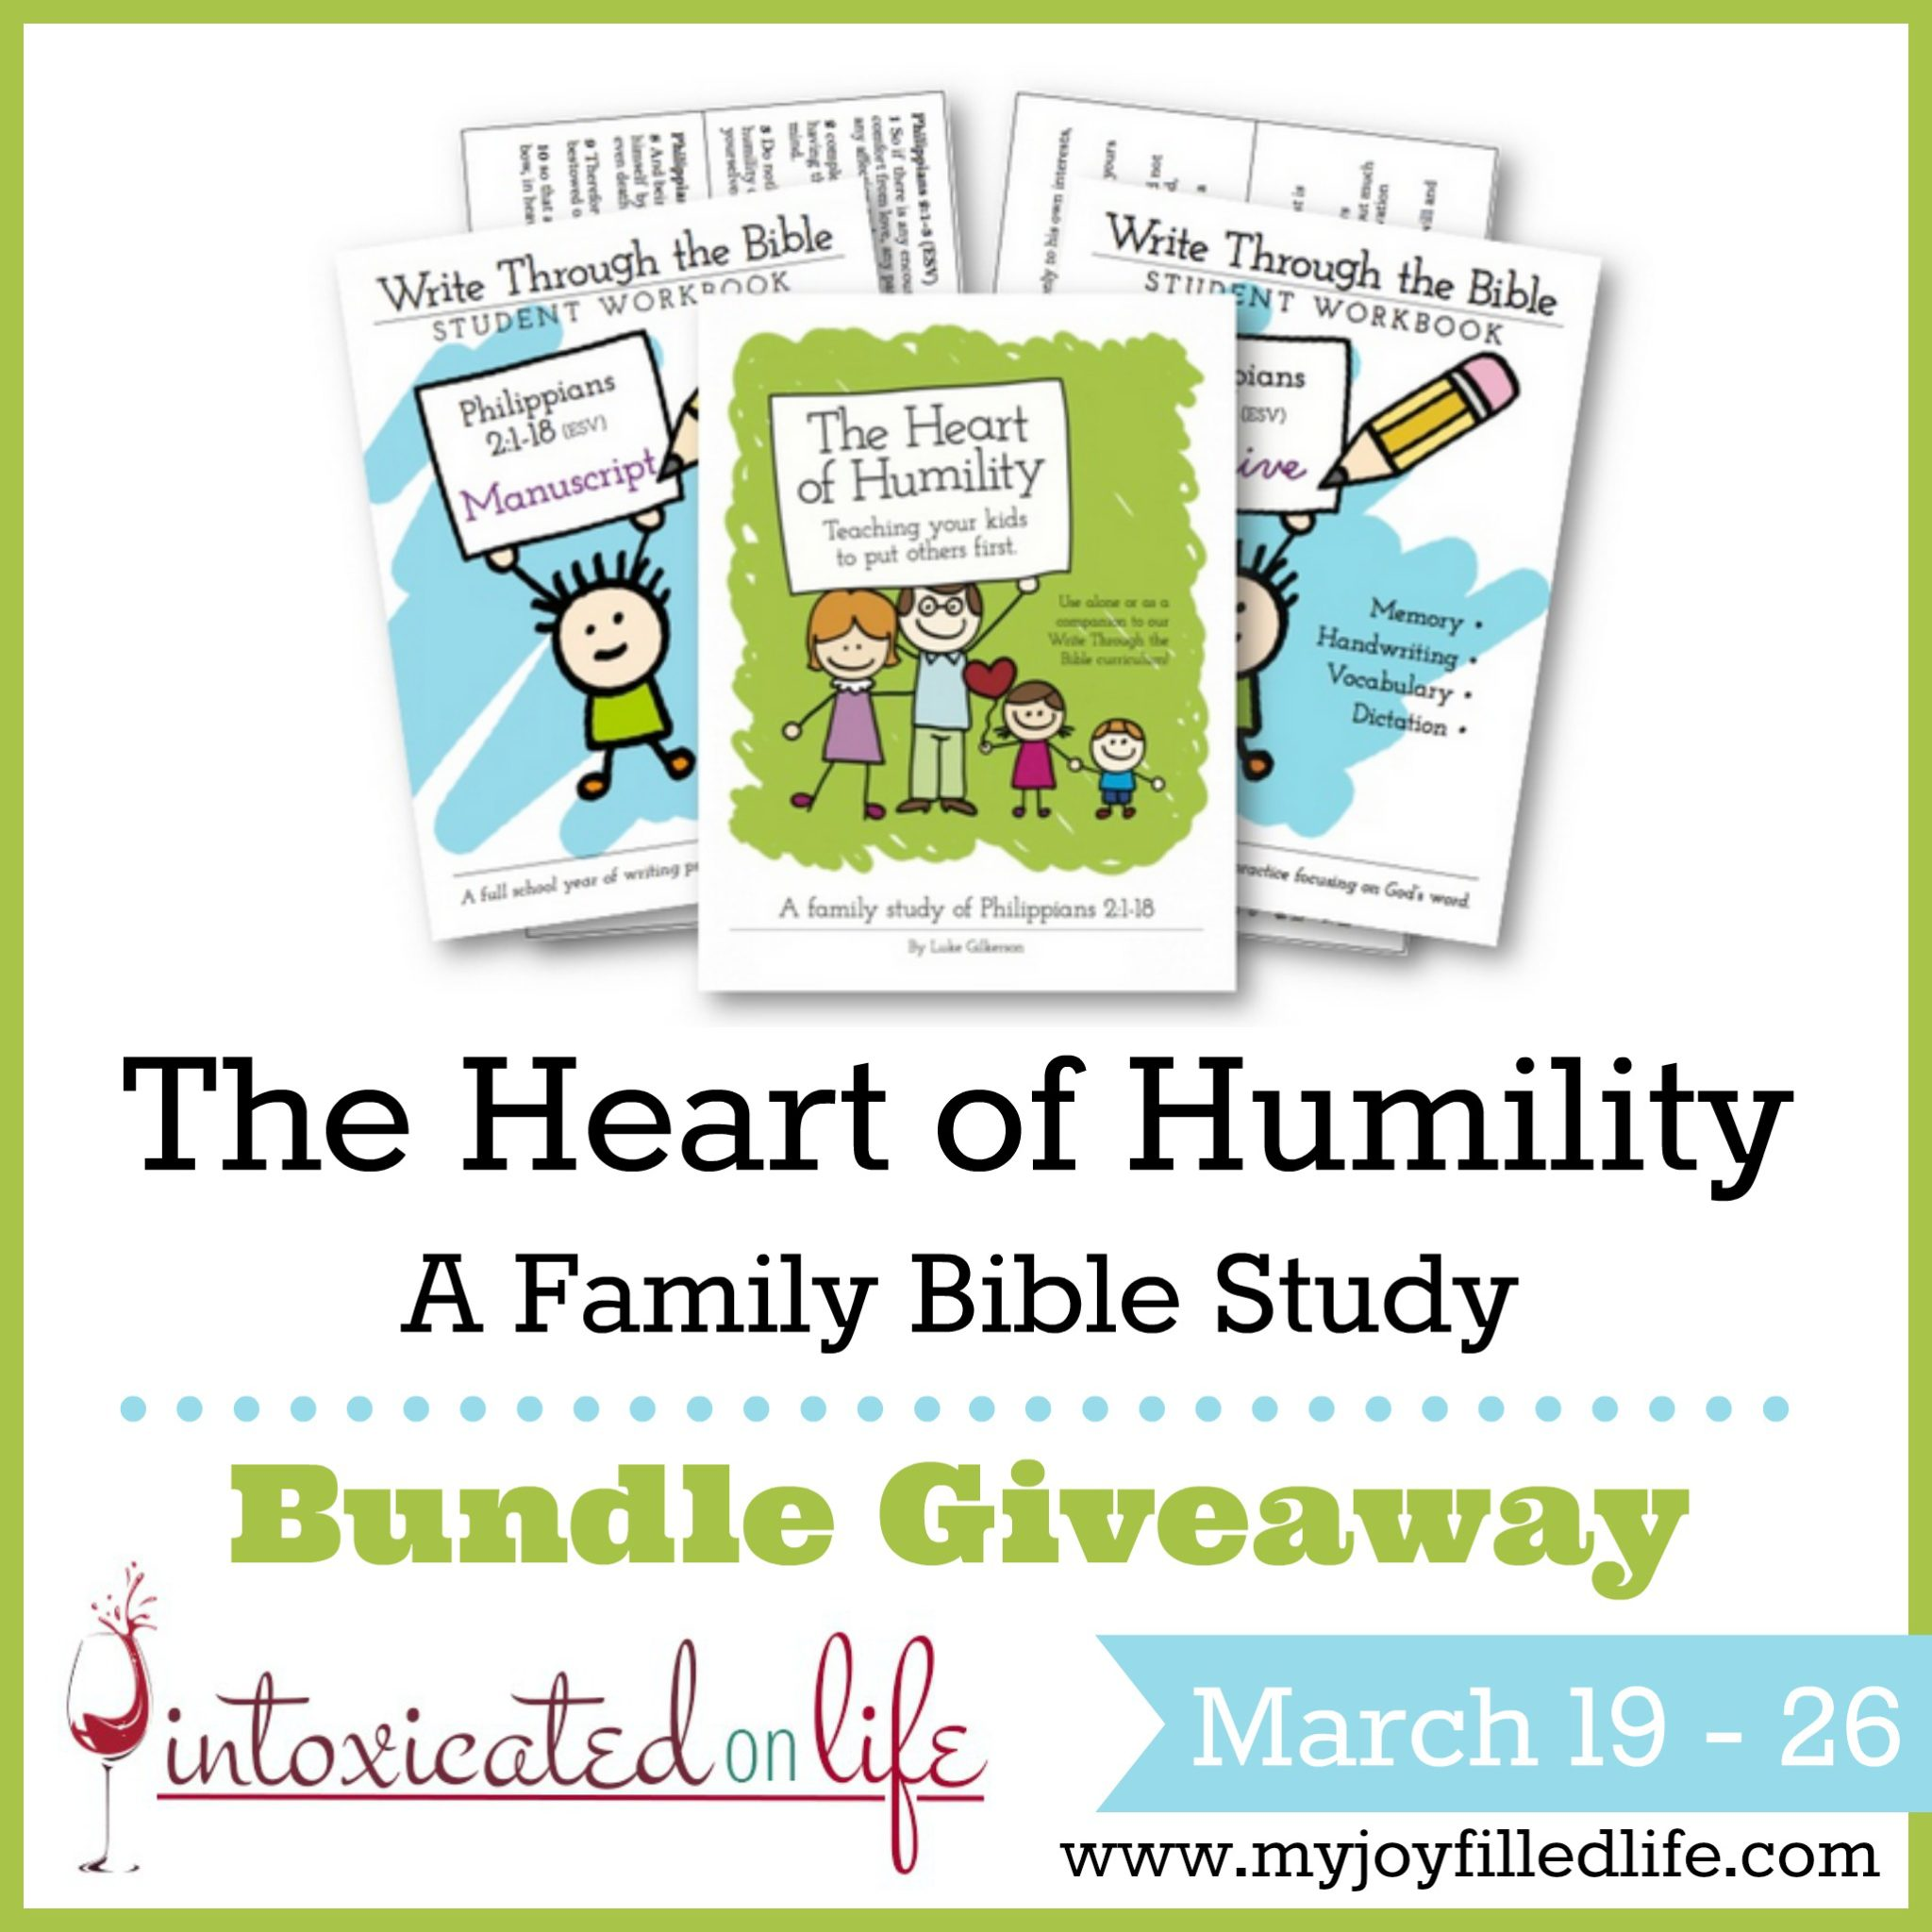 The Heart Of Humility Family Bible Study Blog Birthday Giveaway